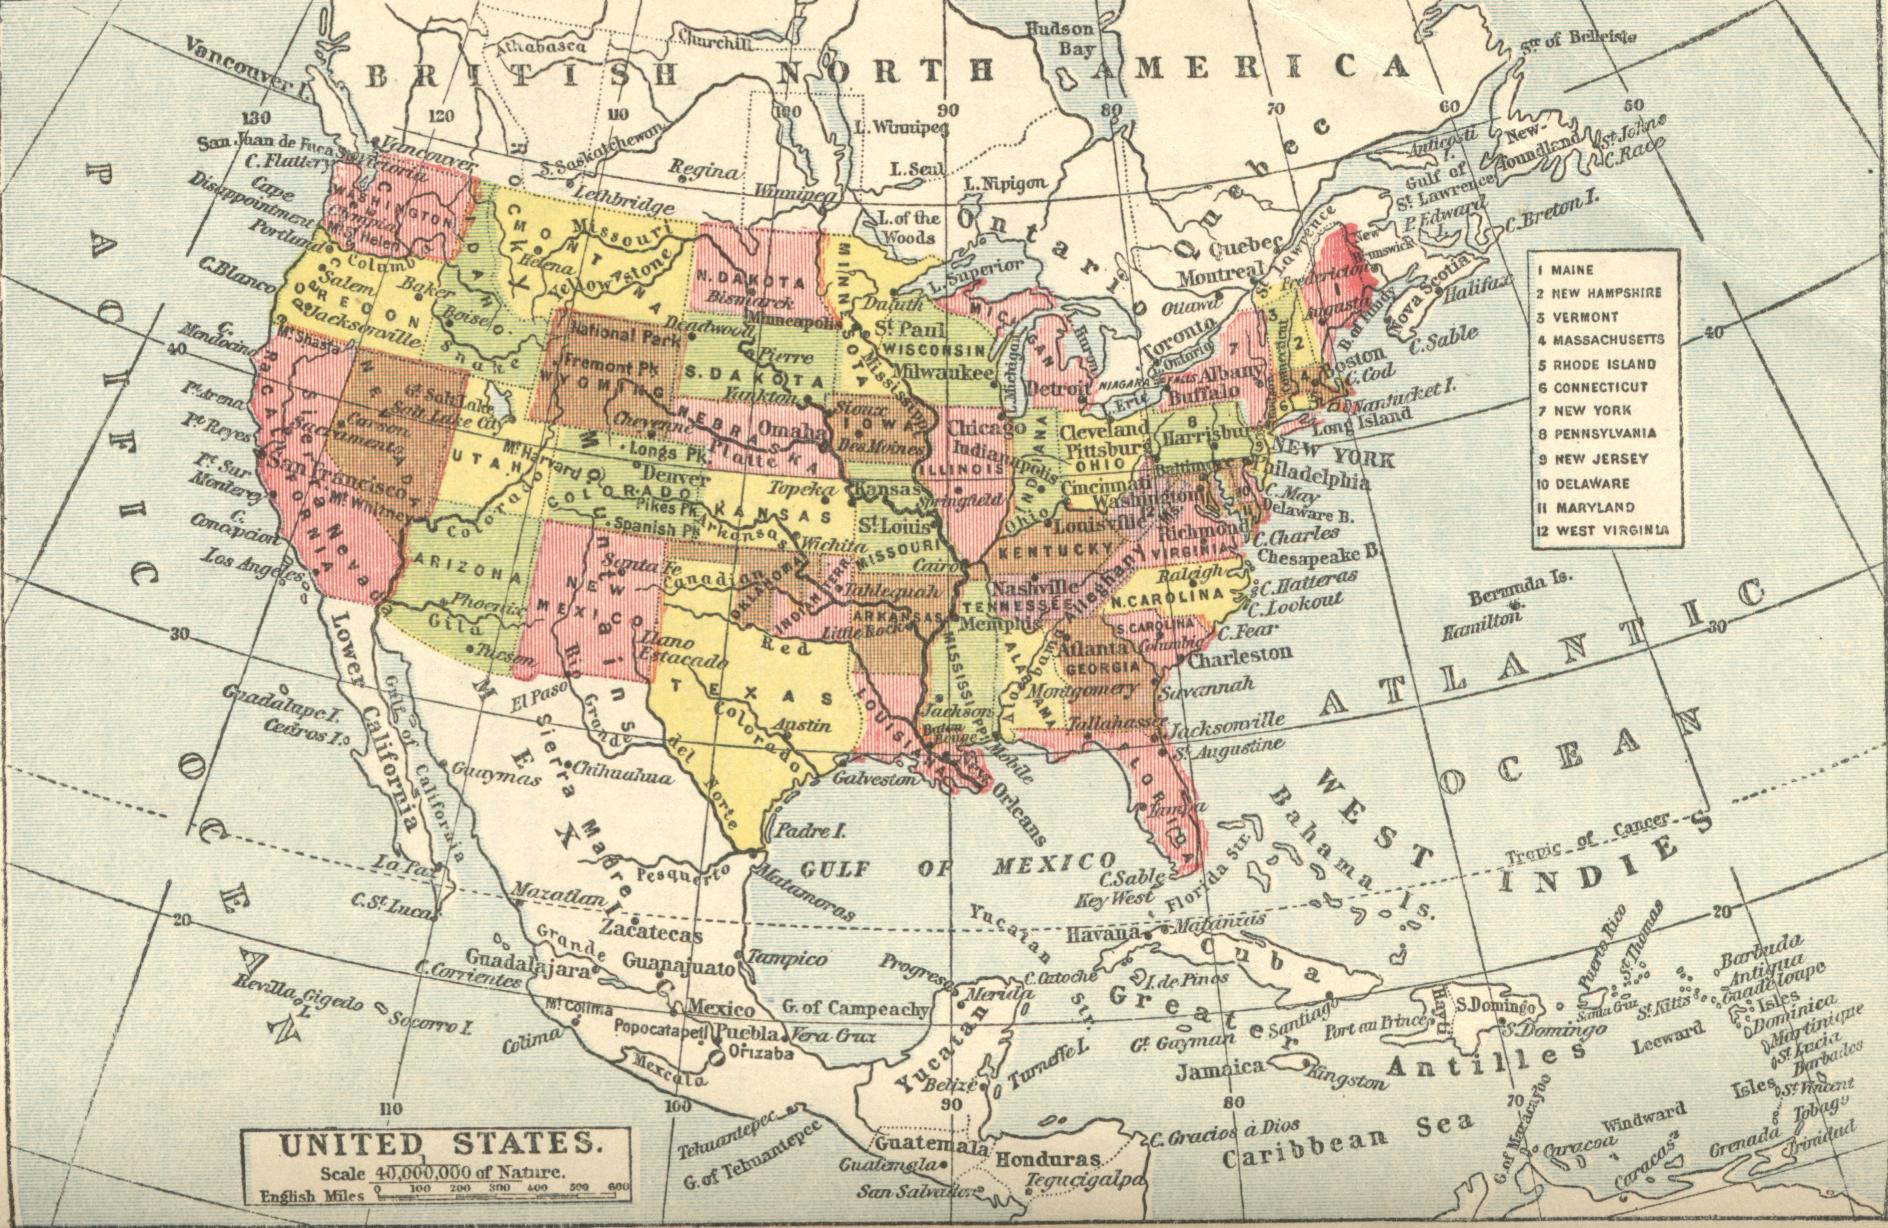 Map Of The United States Of America Also Showing Much Of Canada - United states of anerica map